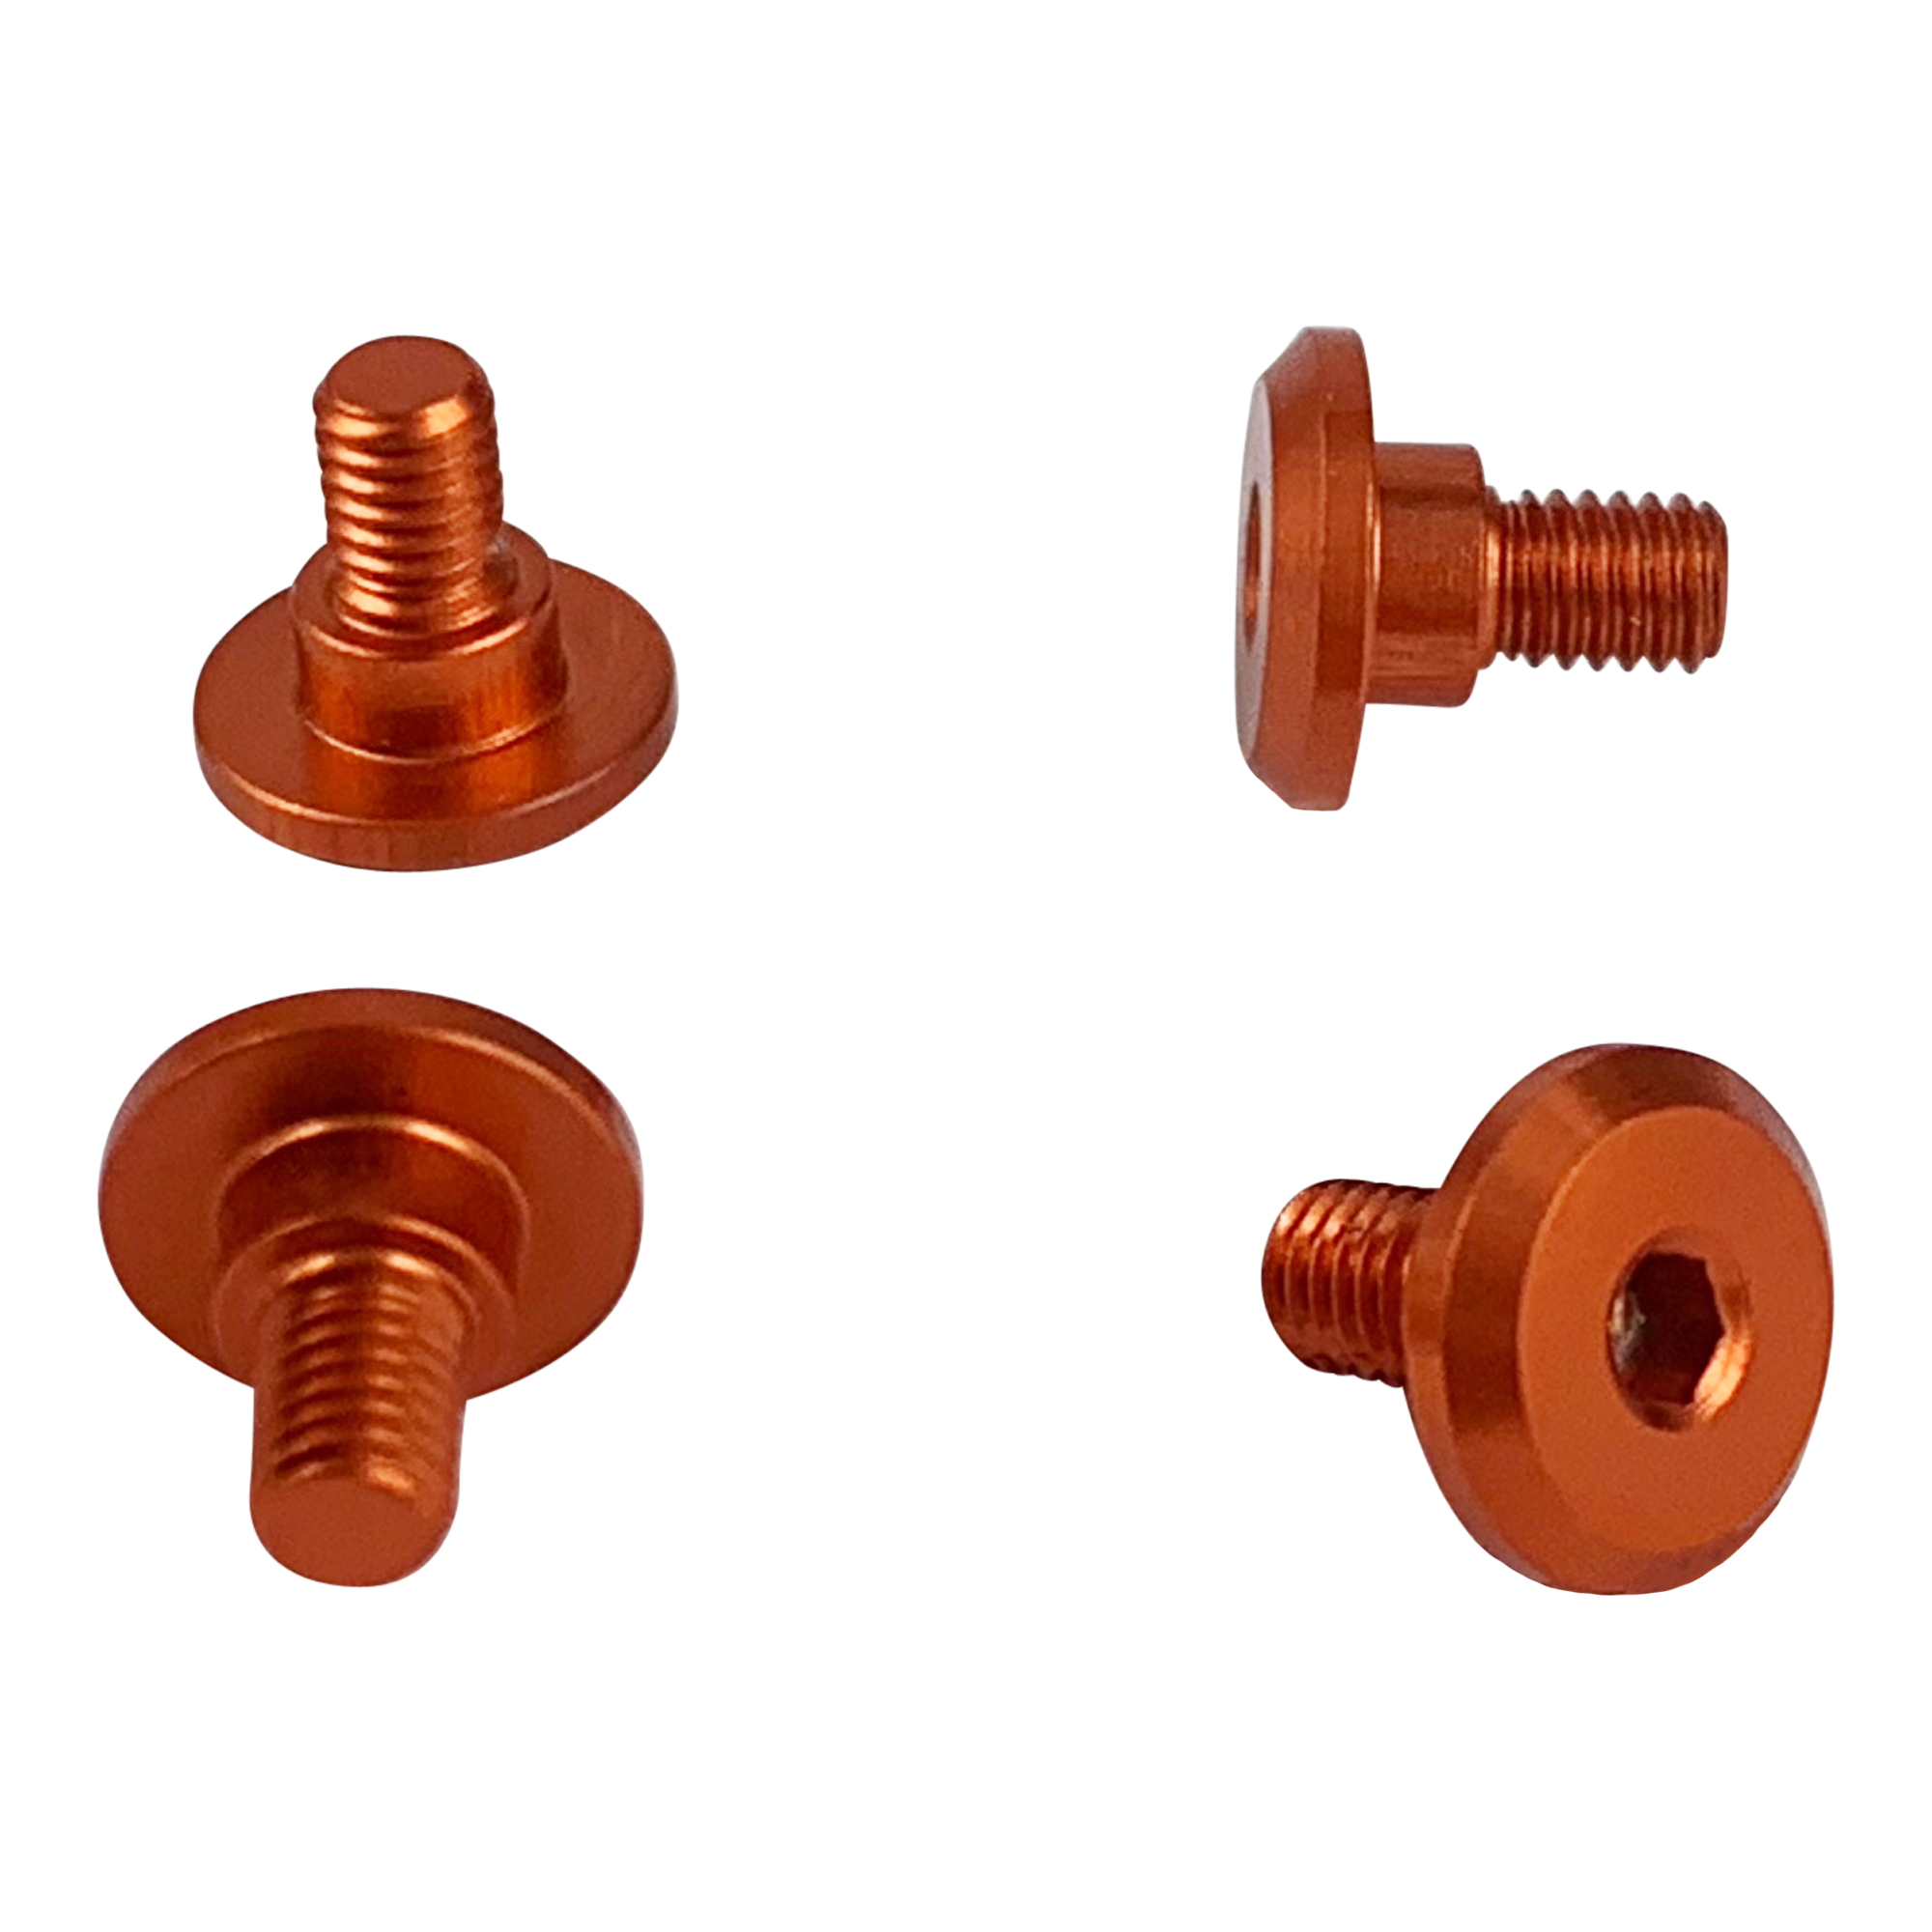 1UP Orange – 4mm Thread Servo Screws